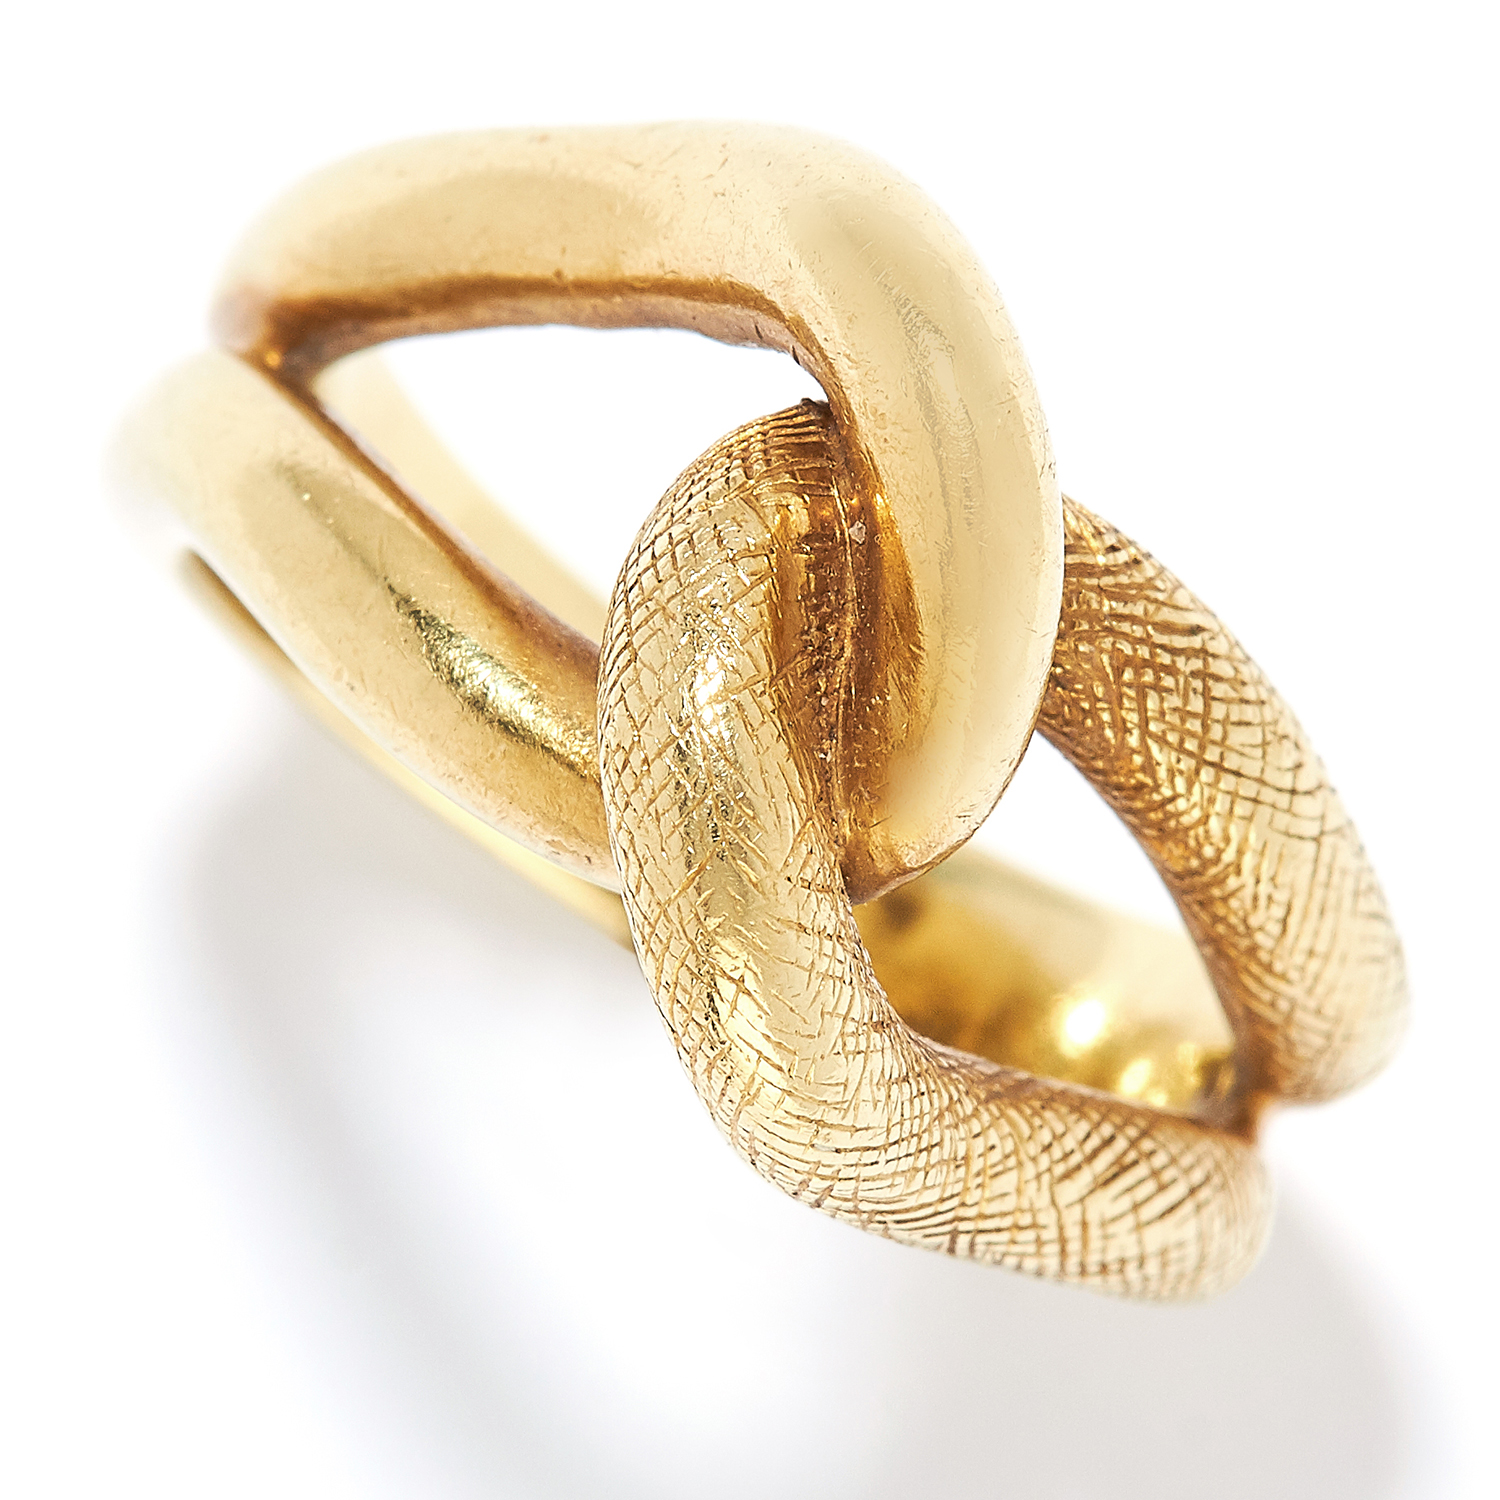 KNOT RING, TIFFANY AND CO in 18ct yellow gold, depicting a textured open knot, signed Tiffany &